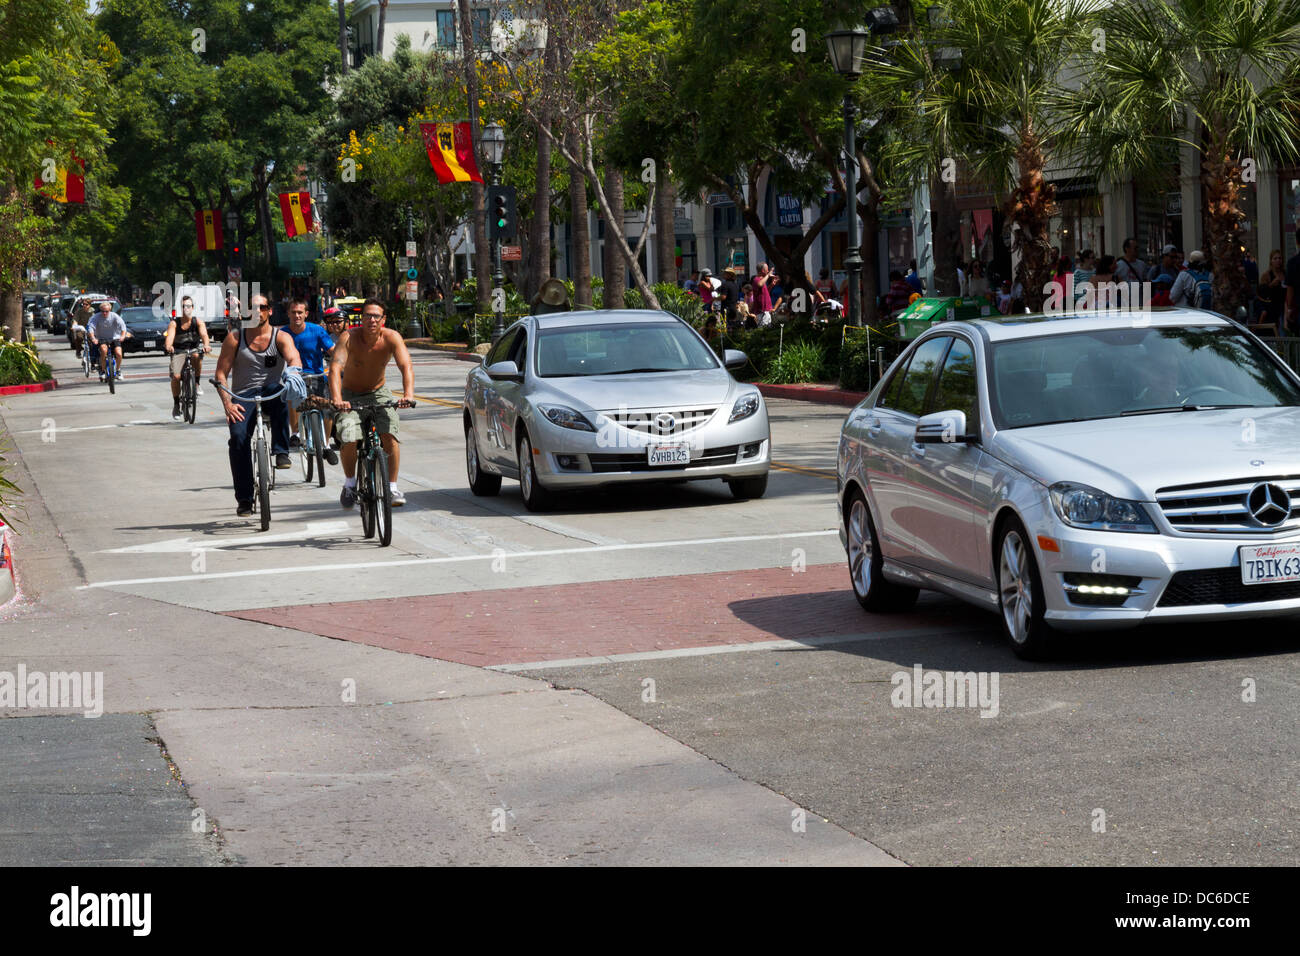 Bicyclists brave the traffic on State Street in Santa Barbara, California. - Stock Image